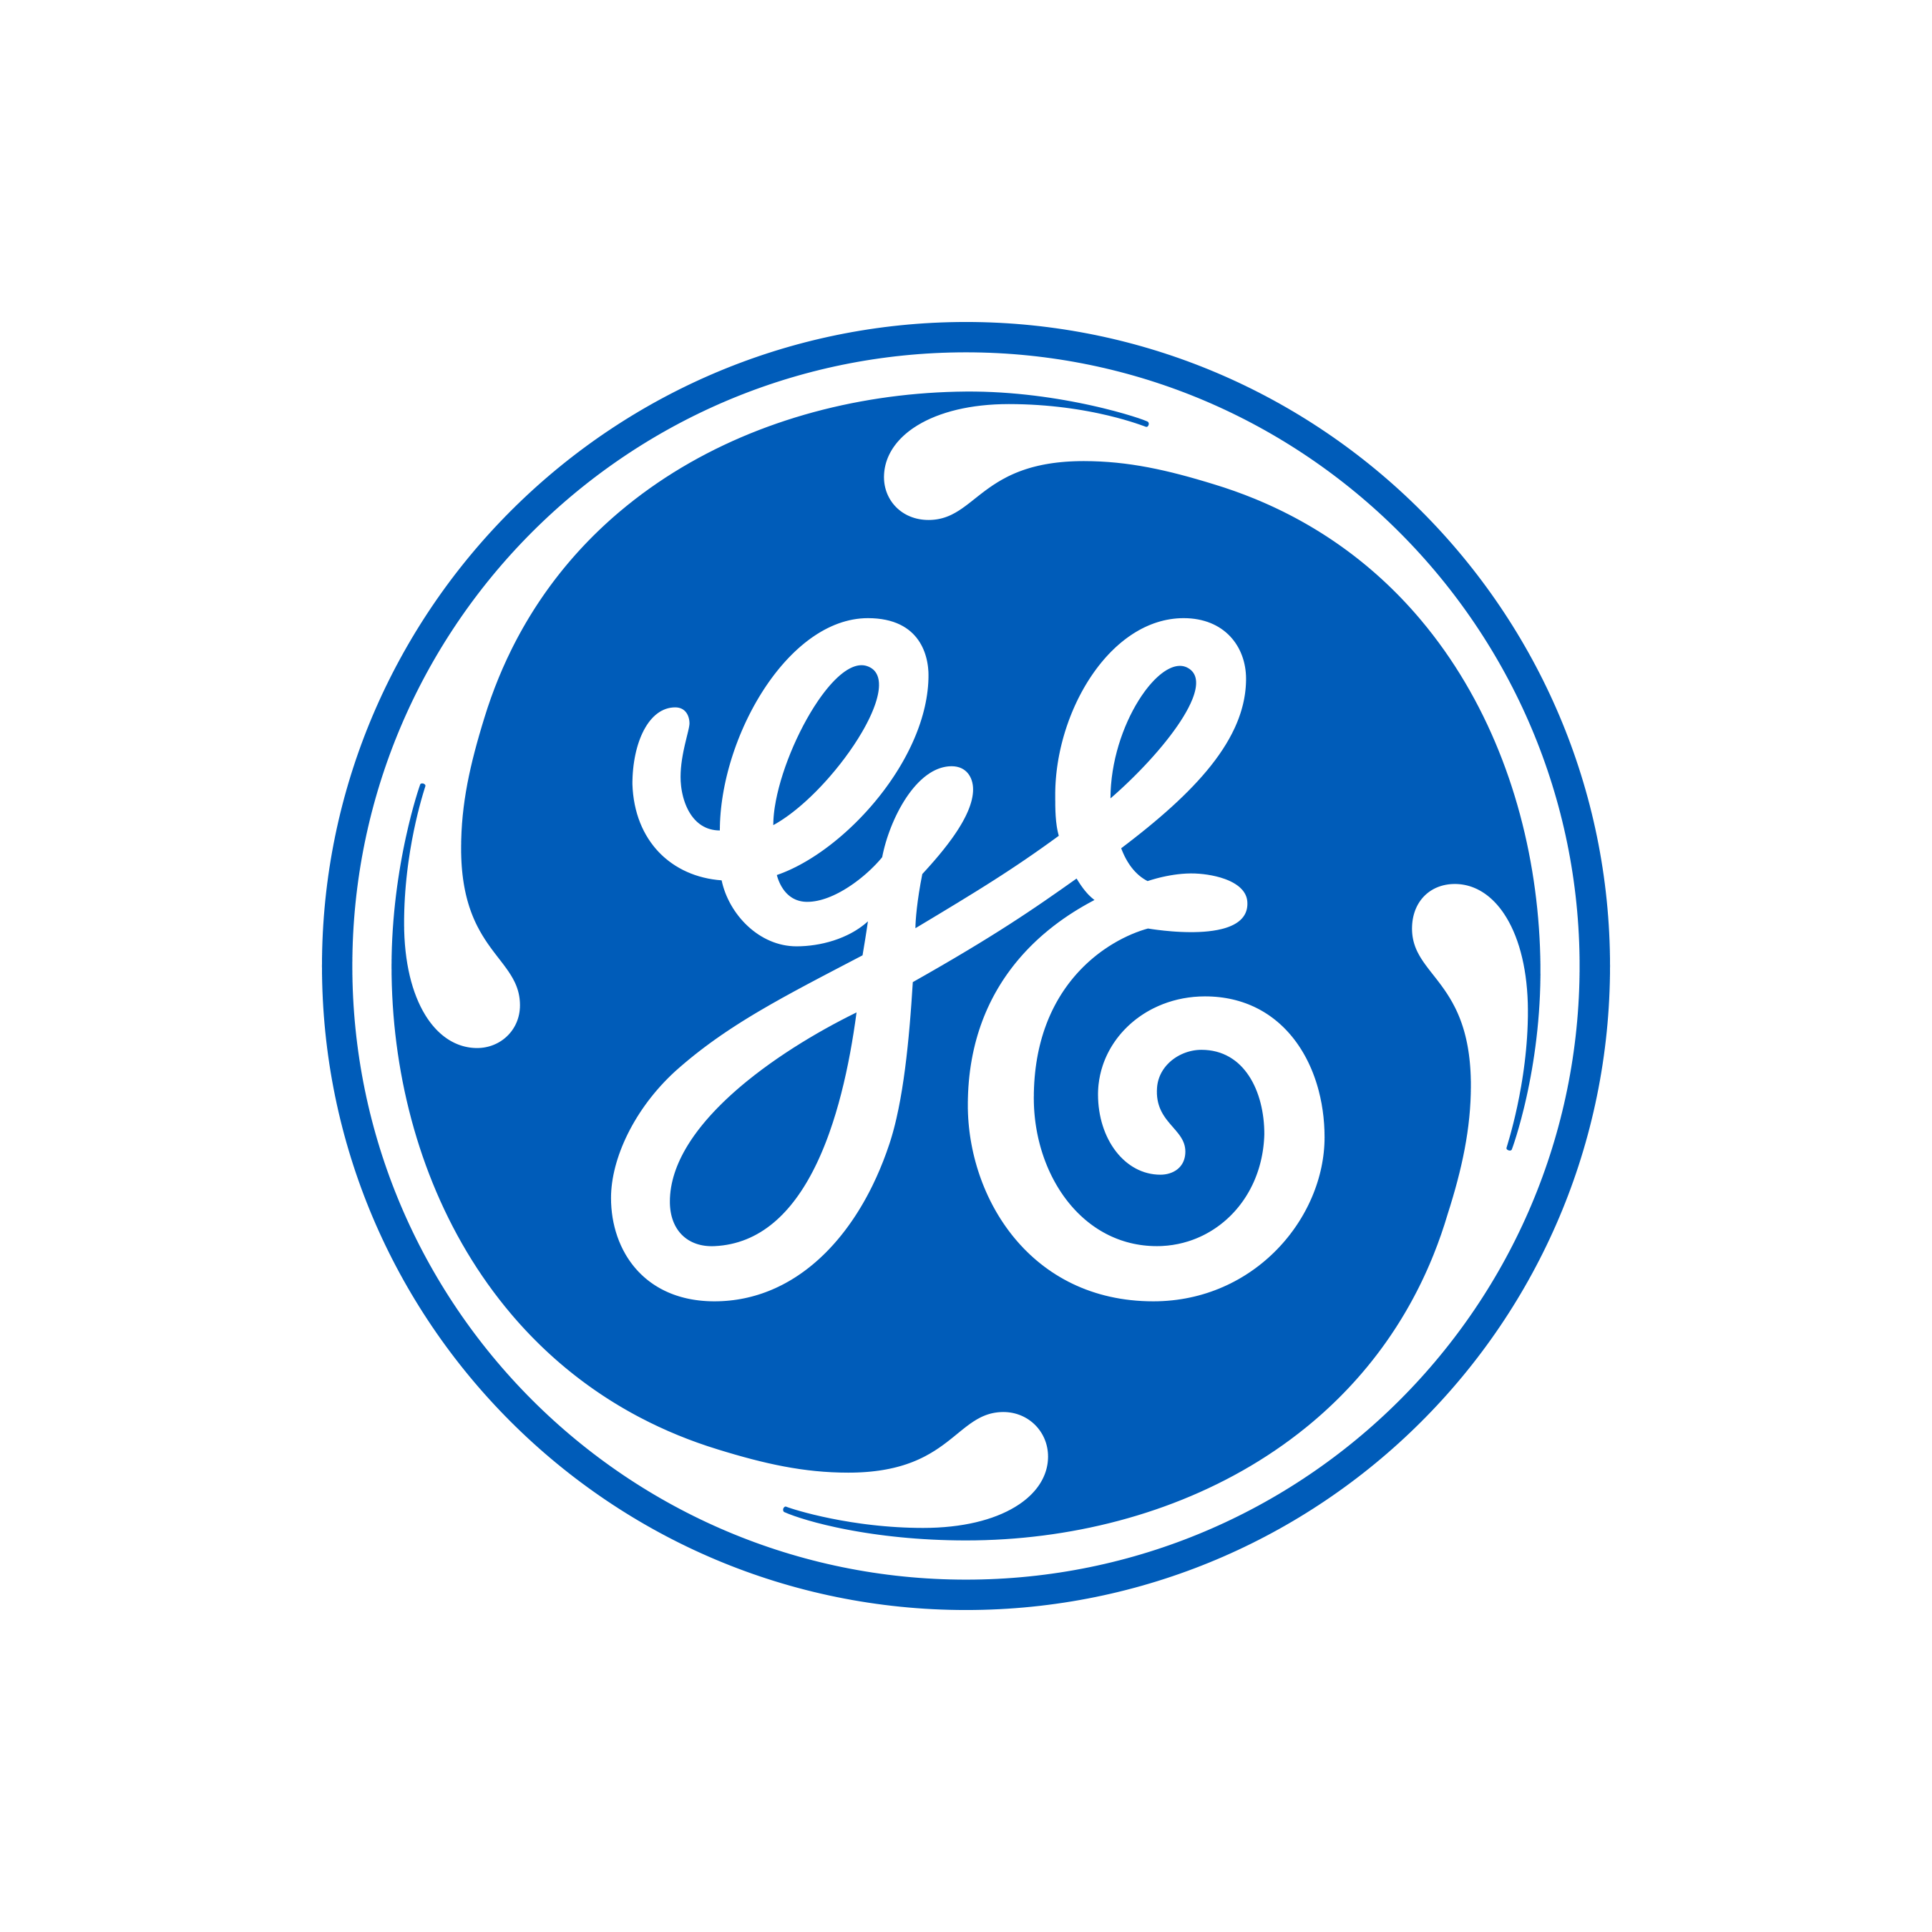 ge monogram primary blue RGB